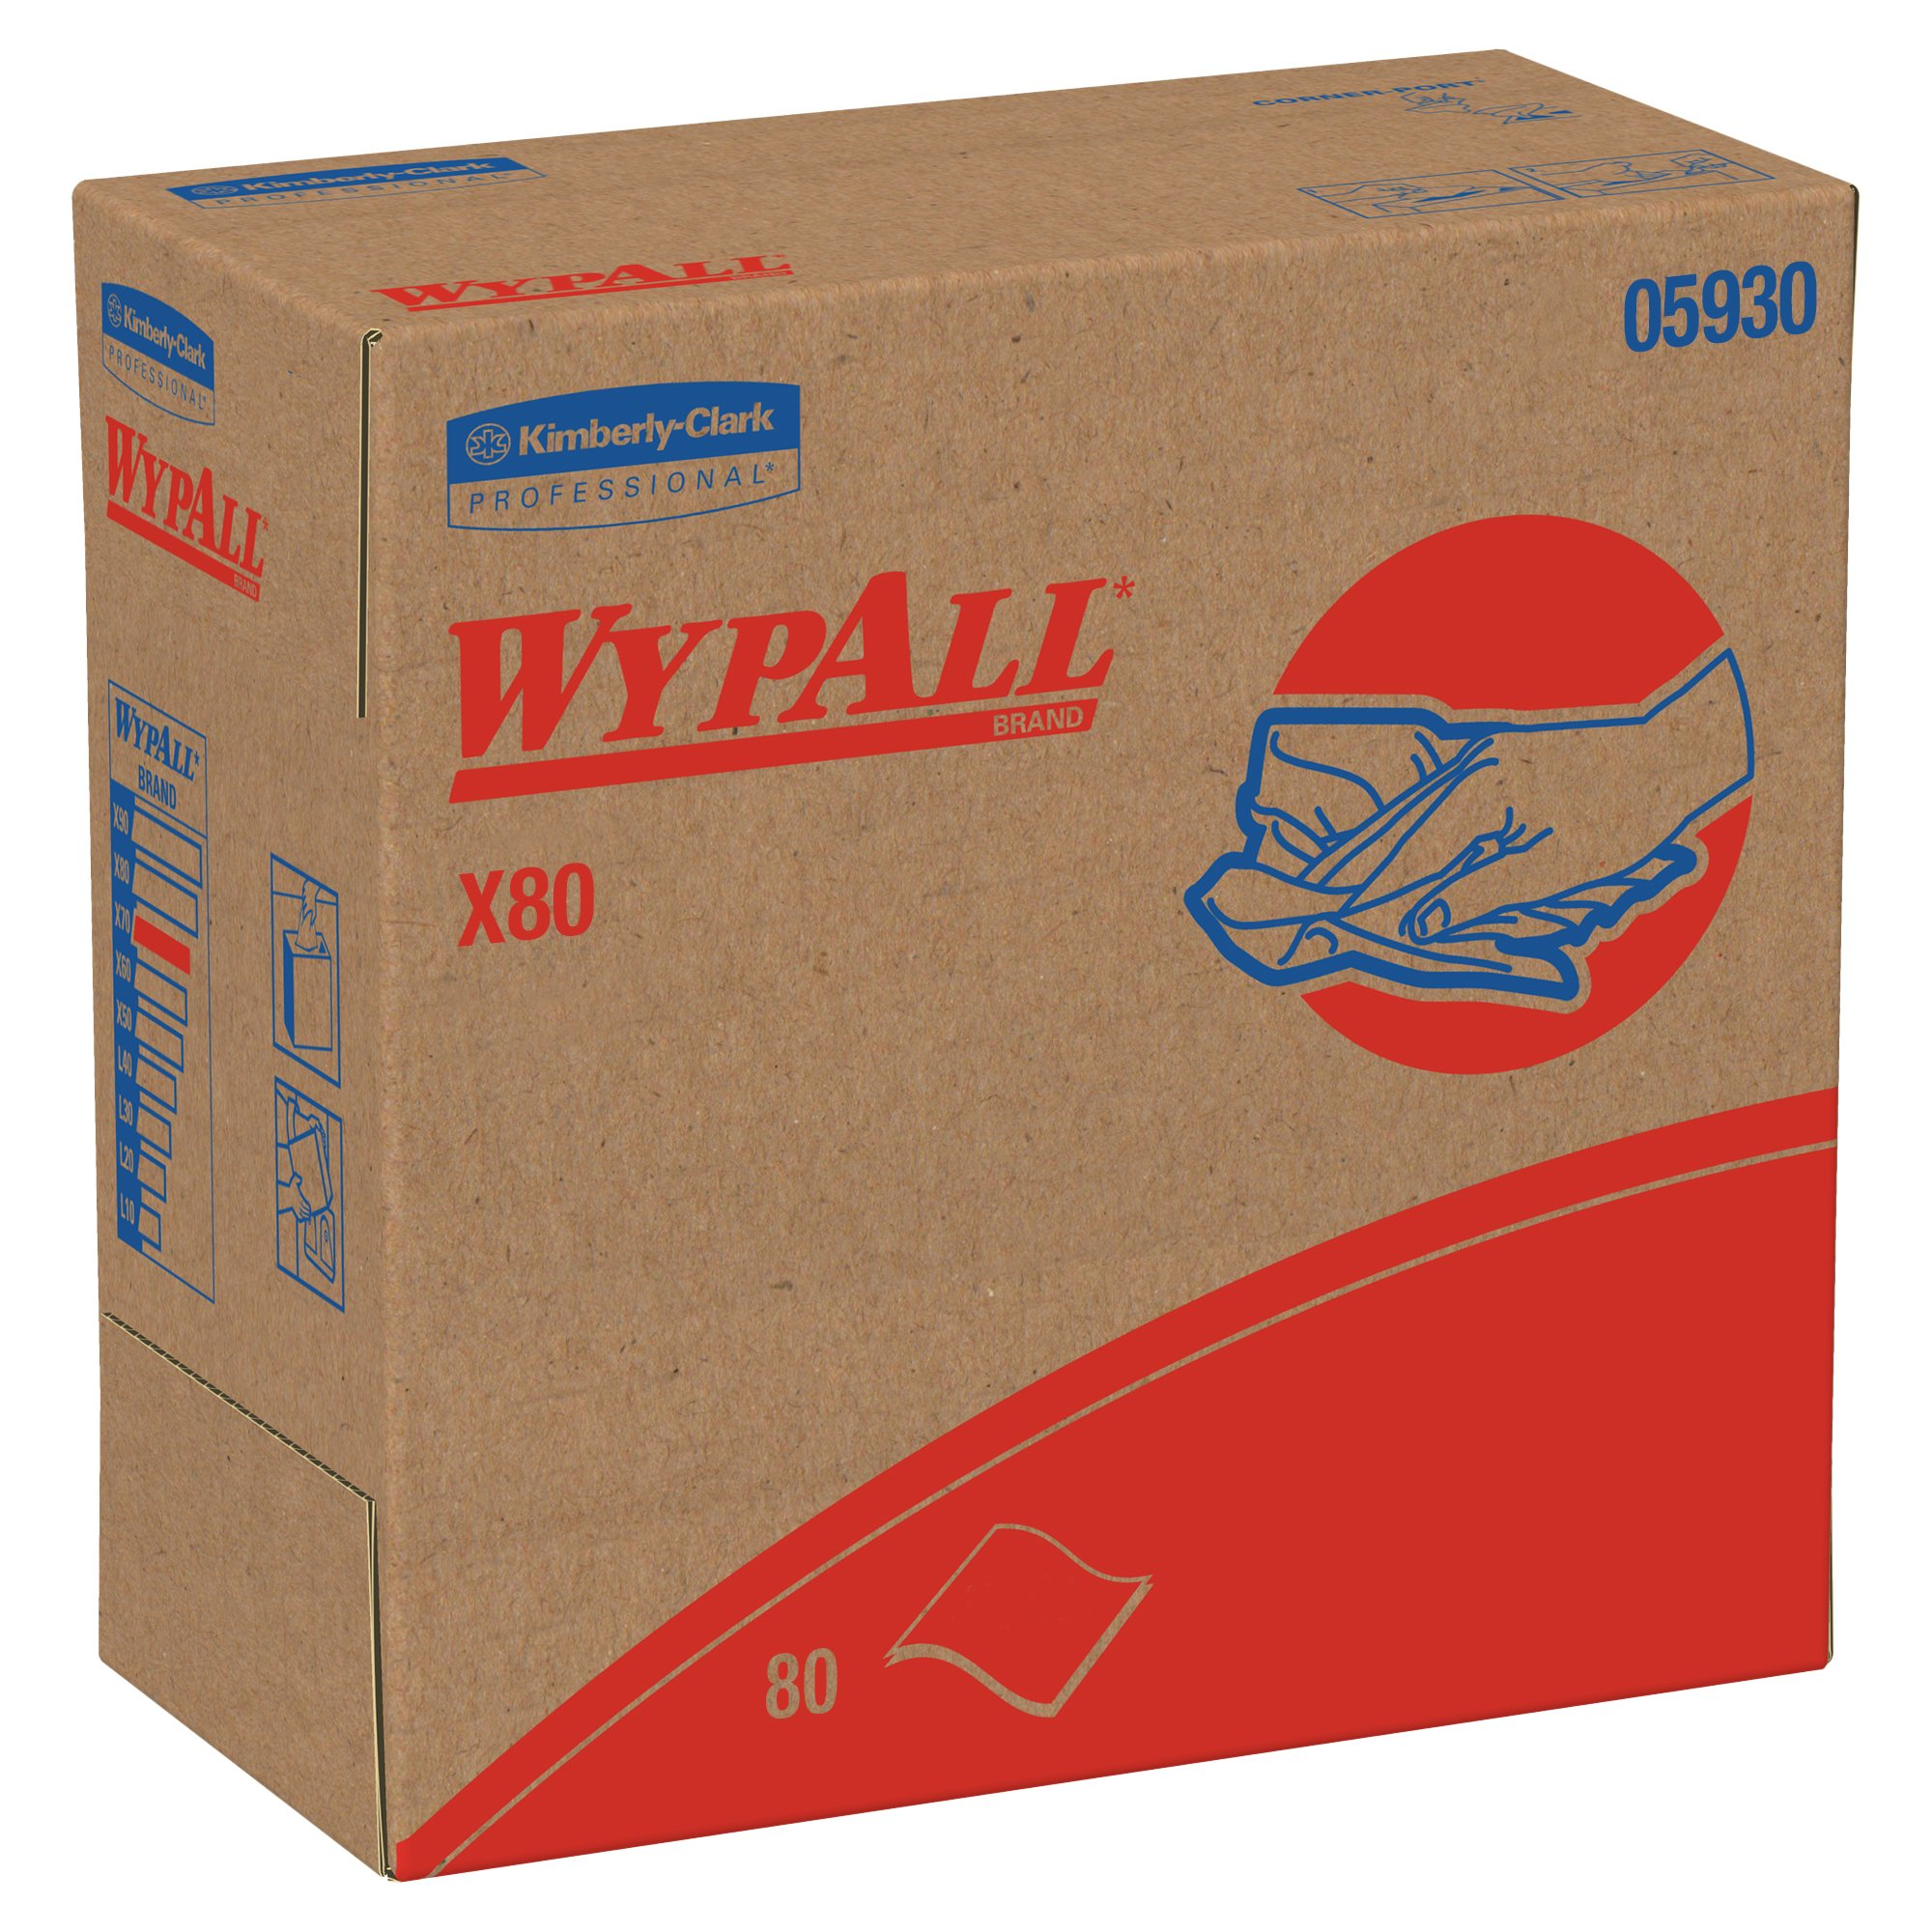 Wypall X80 Reusable Wipes (05930), Extended Use Cloths, Red, 80 Sheets / Pop-Up Box; 5 Boxes / Case by Wypall